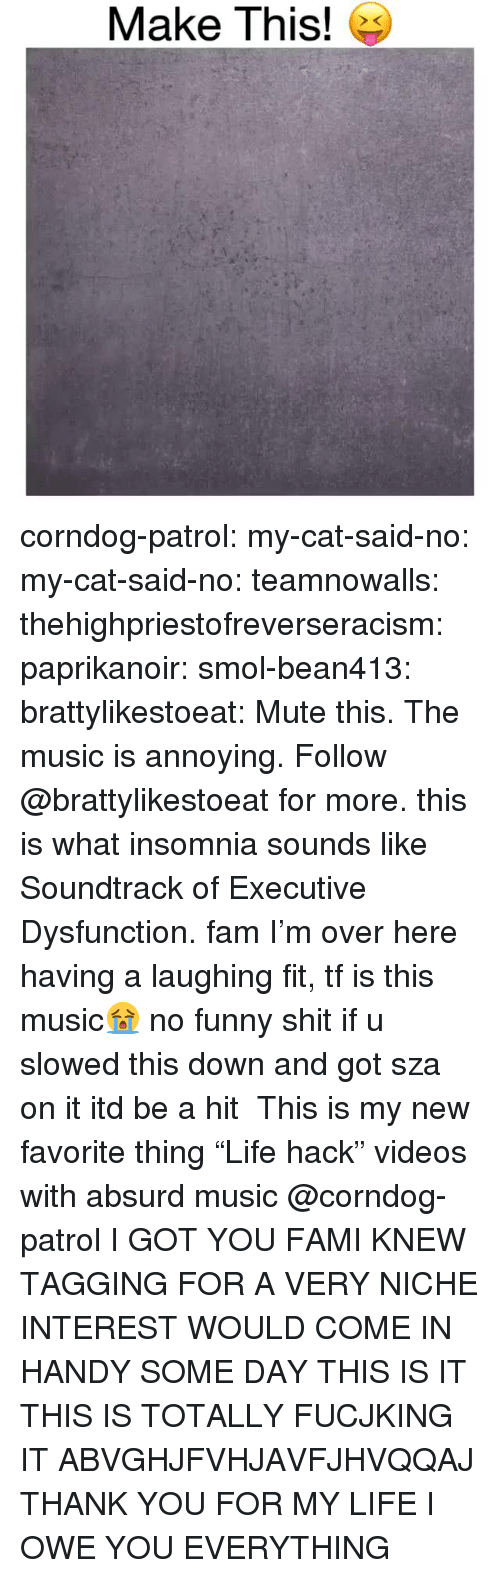 """Absurd: Make This! e corndog-patrol: my-cat-said-no:  my-cat-said-no:  teamnowalls:  thehighpriestofreverseracism:  paprikanoir:  smol-bean413:   brattylikestoeat:  Mute this. The music is annoying. Follow @brattylikestoeat for more.  this is what insomnia sounds like   Soundtrack of Executive Dysfunction.  fam I'm over here having a laughing fit, tf is this music😭  no funny shit if u slowed this down and got sza on it itd be a hit   This is my new favorite thing """"Life hack"""" videos with absurd music   @corndog-patrol I GOT YOU FAMI KNEW TAGGING FOR A VERY NICHE INTEREST WOULD COME IN HANDY SOME DAY  THIS IS IT THIS IS TOTALLY FUCJKING IT ABVGHJFVHJAVFJHVQQAJ THANK YOU FOR MY LIFE I OWE YOU EVERYTHING"""